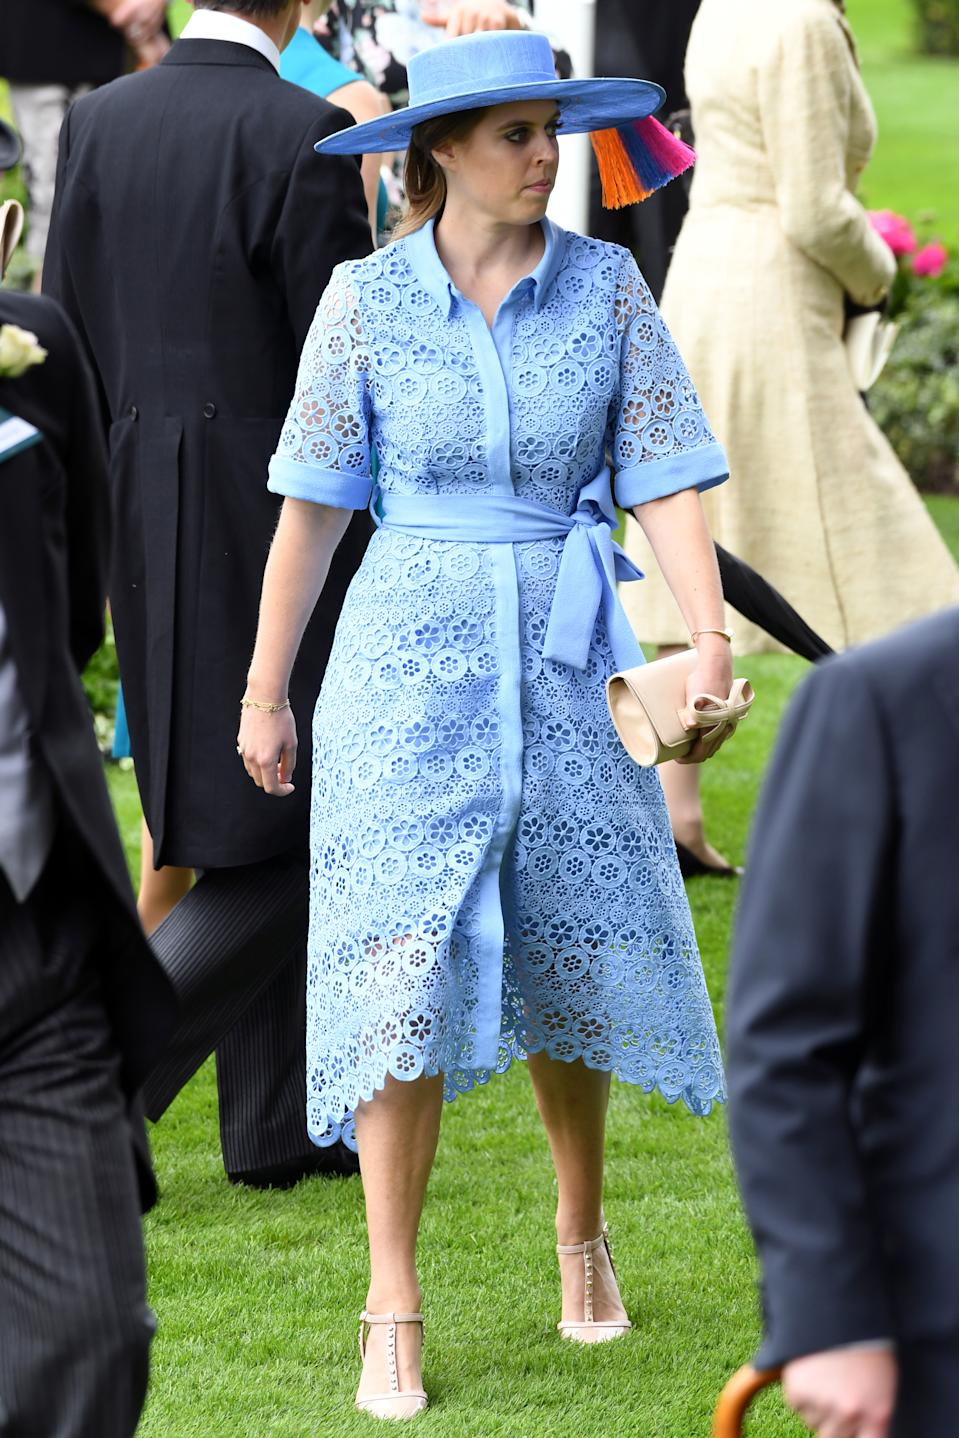 """Princess Beatrice wore an embroidered lace shirt dress by <a href=""""https://fave.co/2WRc5sE"""" rel=""""nofollow noopener"""" target=""""_blank"""" data-ylk=""""slk:Maje"""" class=""""link rapid-noclick-resp"""">Maje</a> with a matching hat by Bundle MacLaren and nude accessories. <em>[Photo: PA]</em>"""